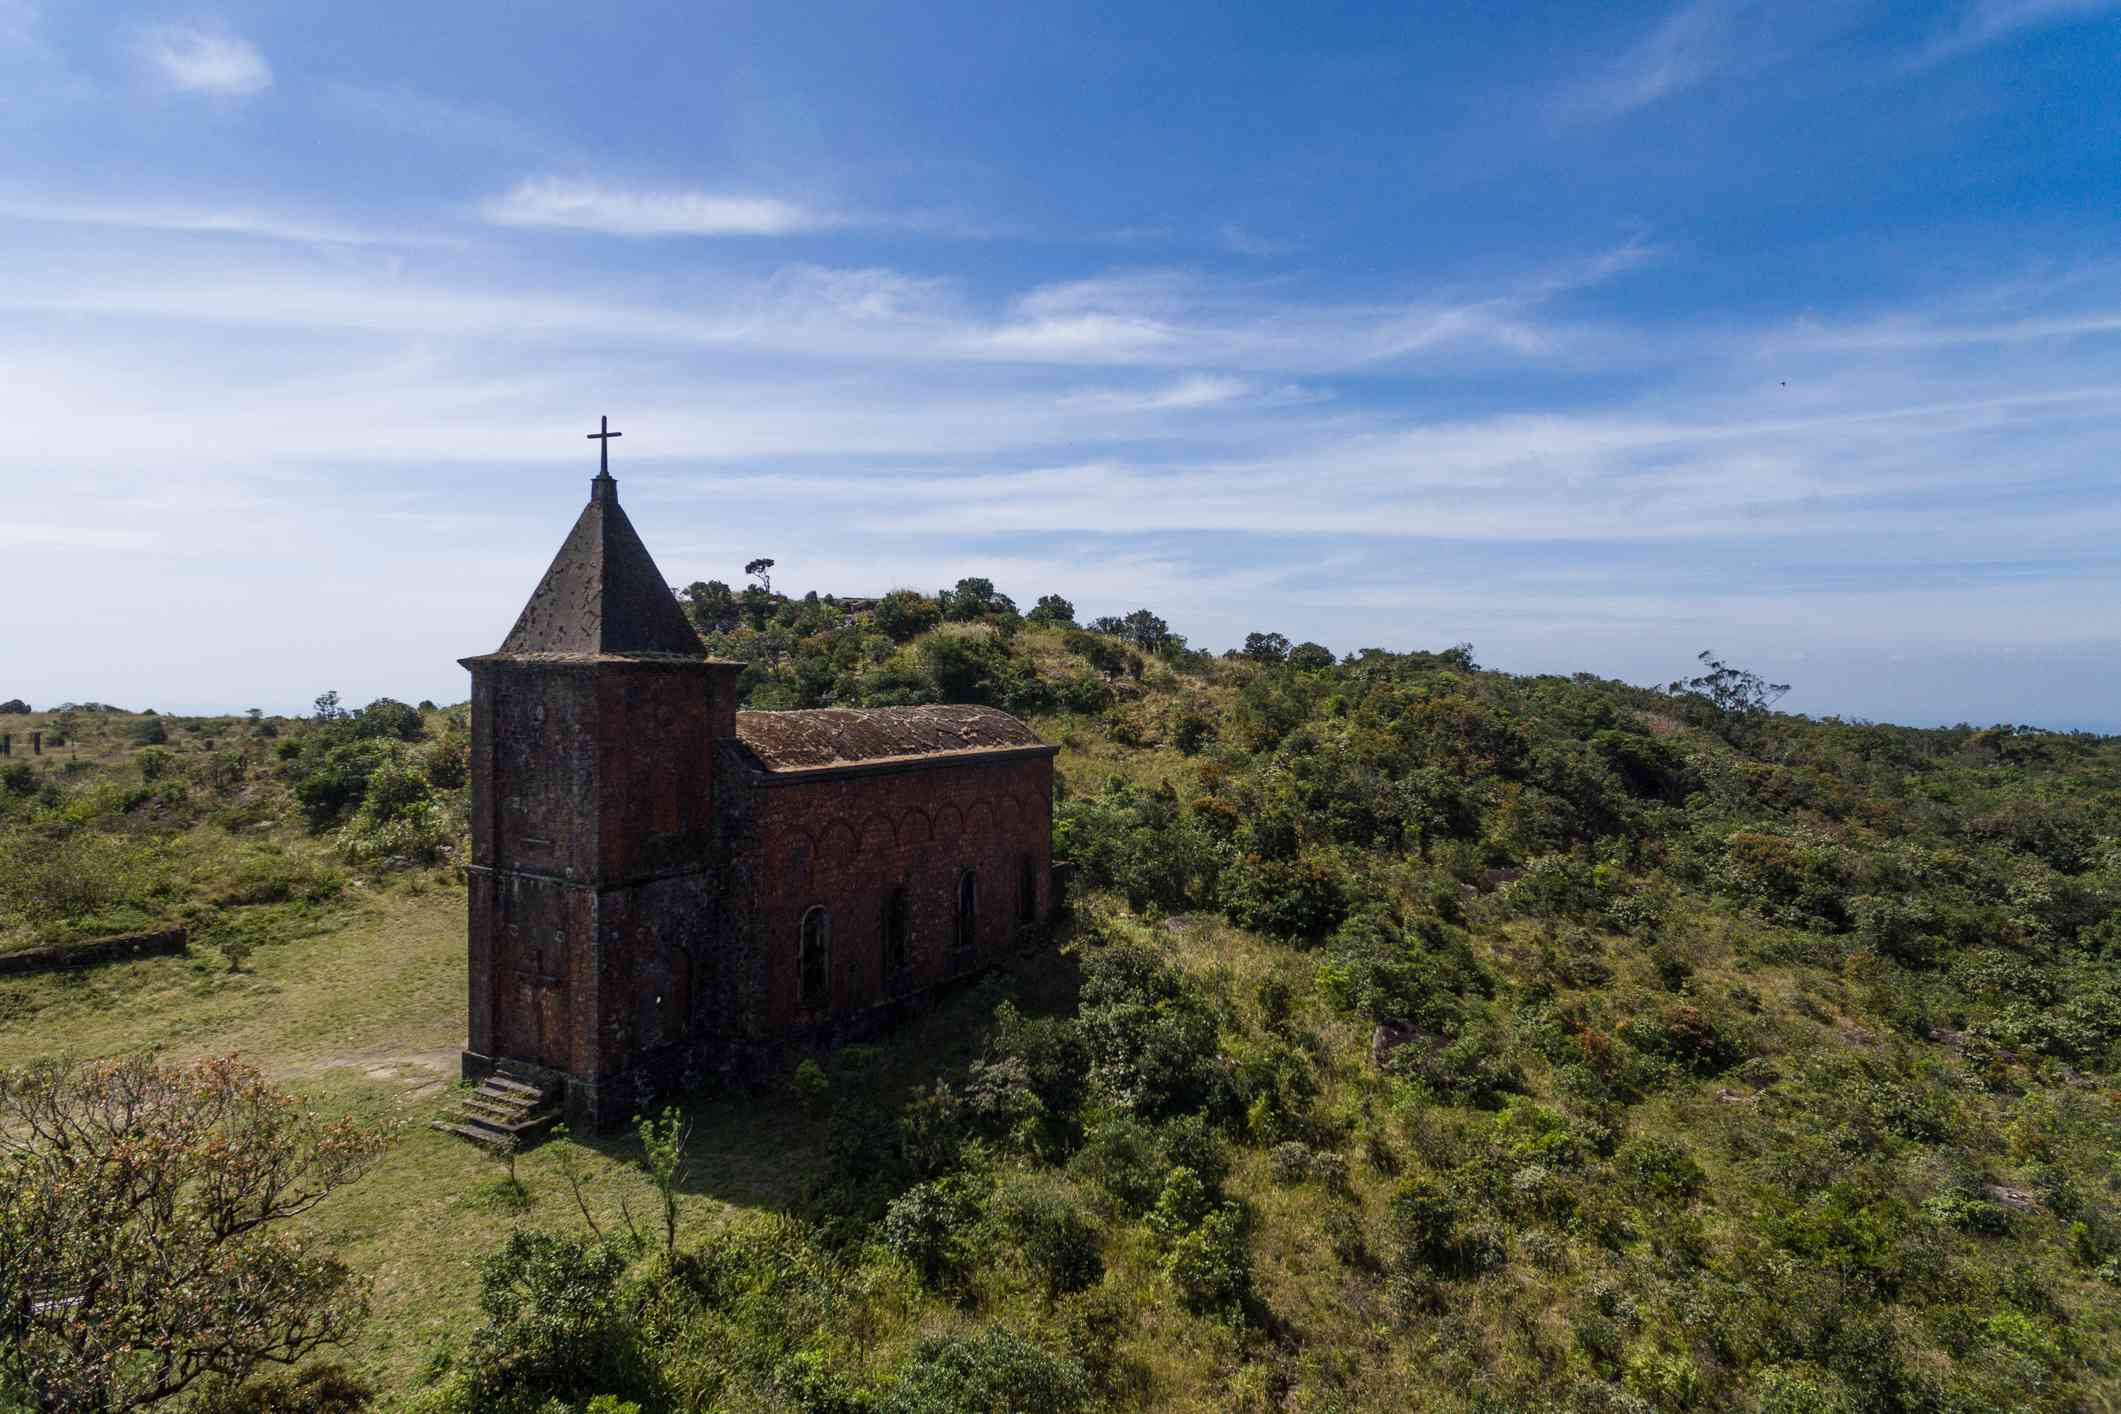 Aerial view of Bokor Hill Station, an abandoned church surrounded by lush green trees and plants on top of a hill inside of Preah Monivong National Park under a blue sky with light clouds